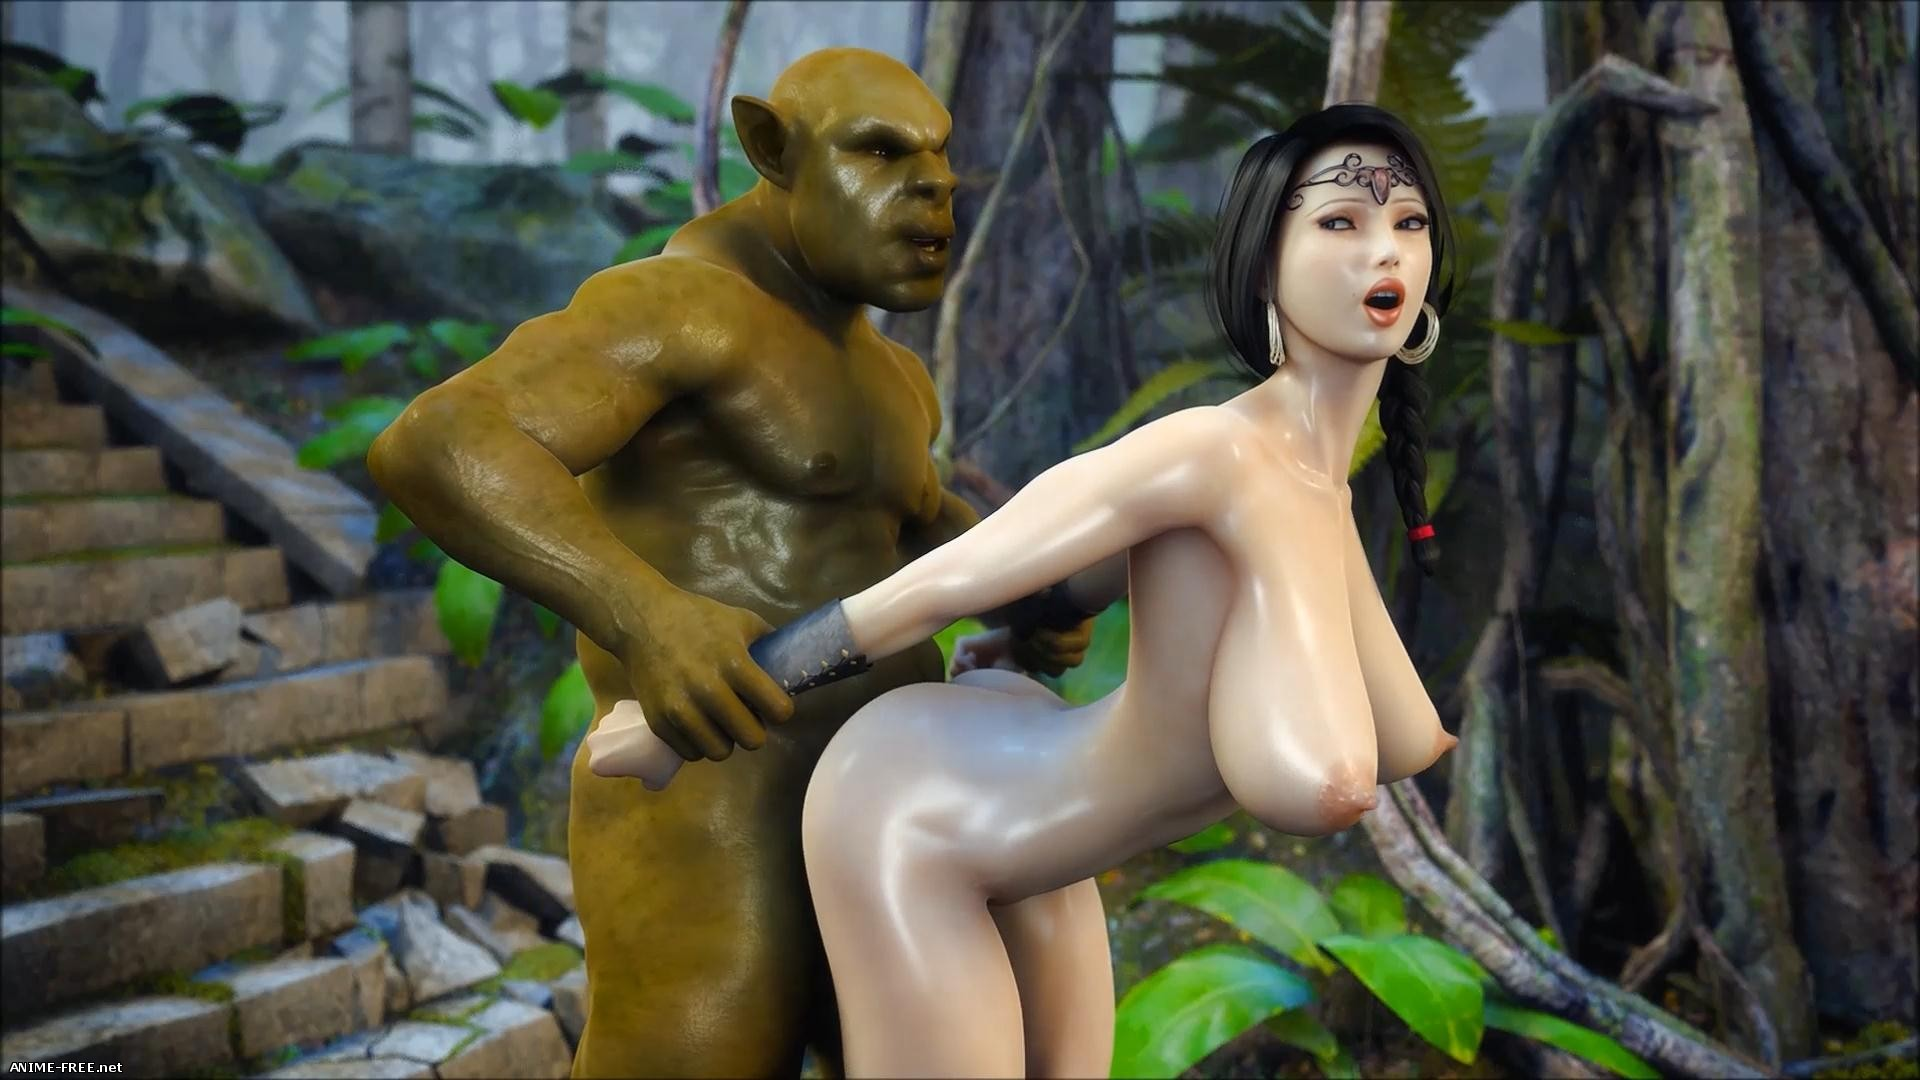 Secret of Beauty Orc Ritual and Secret of Beauty Stone Lady [2 из 2] [Uncen] [3D] [1080p] Anime Hentai